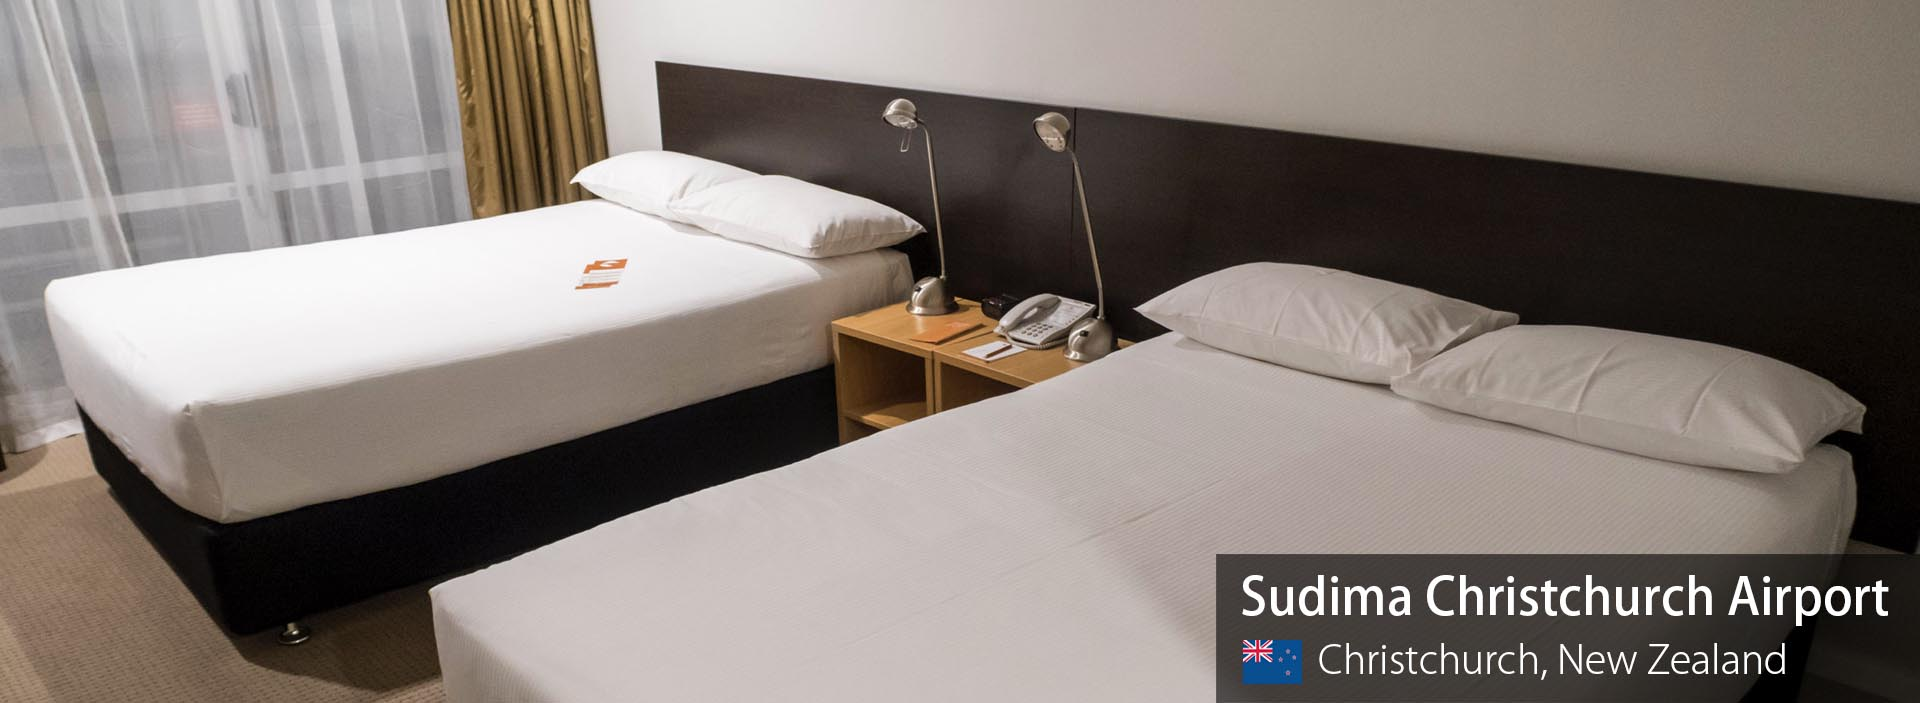 Airport Hotel Review: Sudima Christchurch Airport